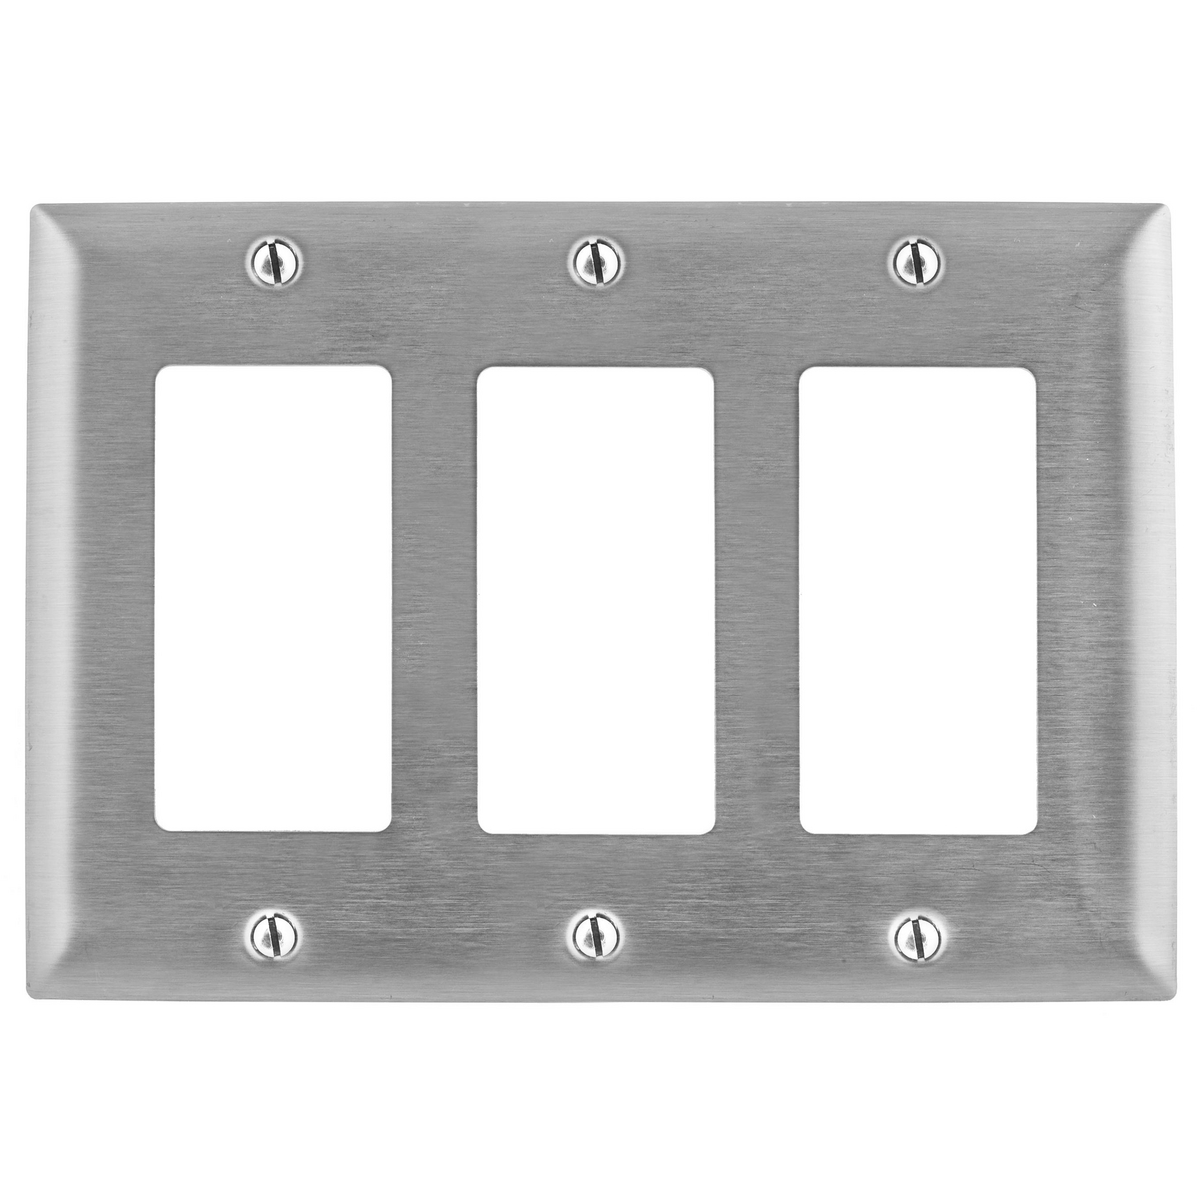 Hubbell SS263 3-Gang Stainless Steel 3-Decorator Switch Screw Mount Wallplate